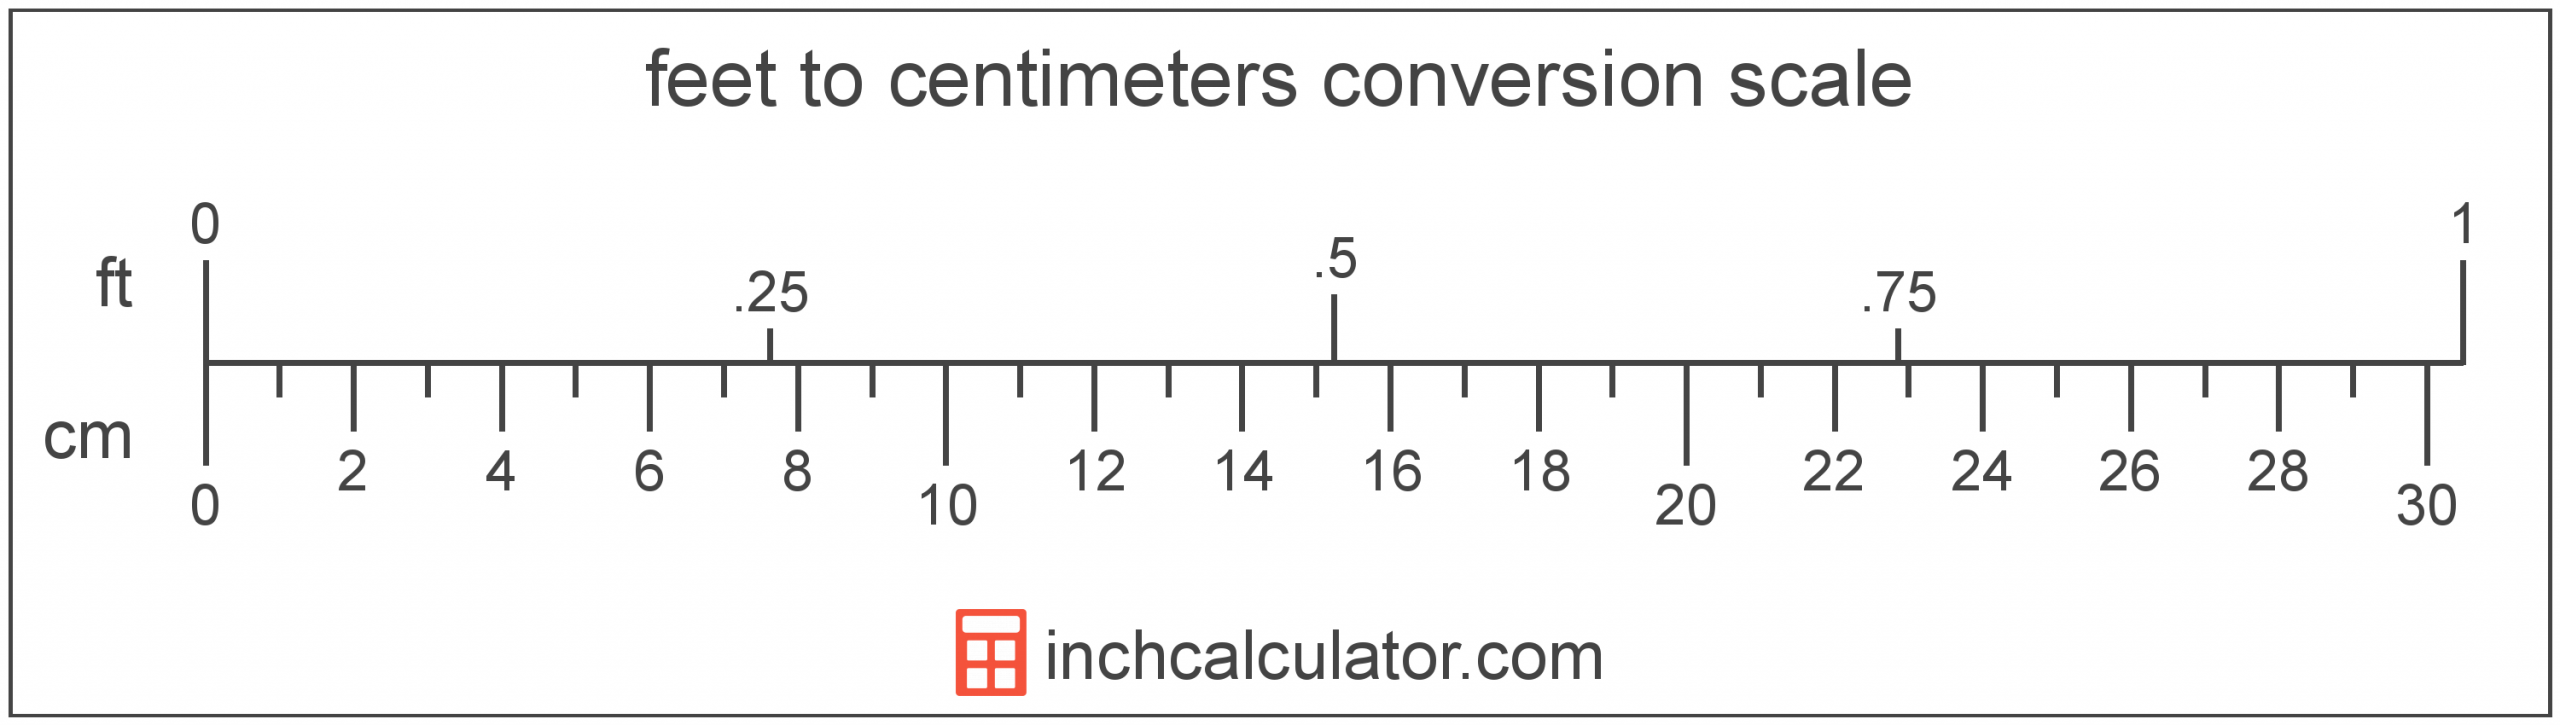 Feet To Centimeters Conversion (Ft To Cm) - Inch Calculator